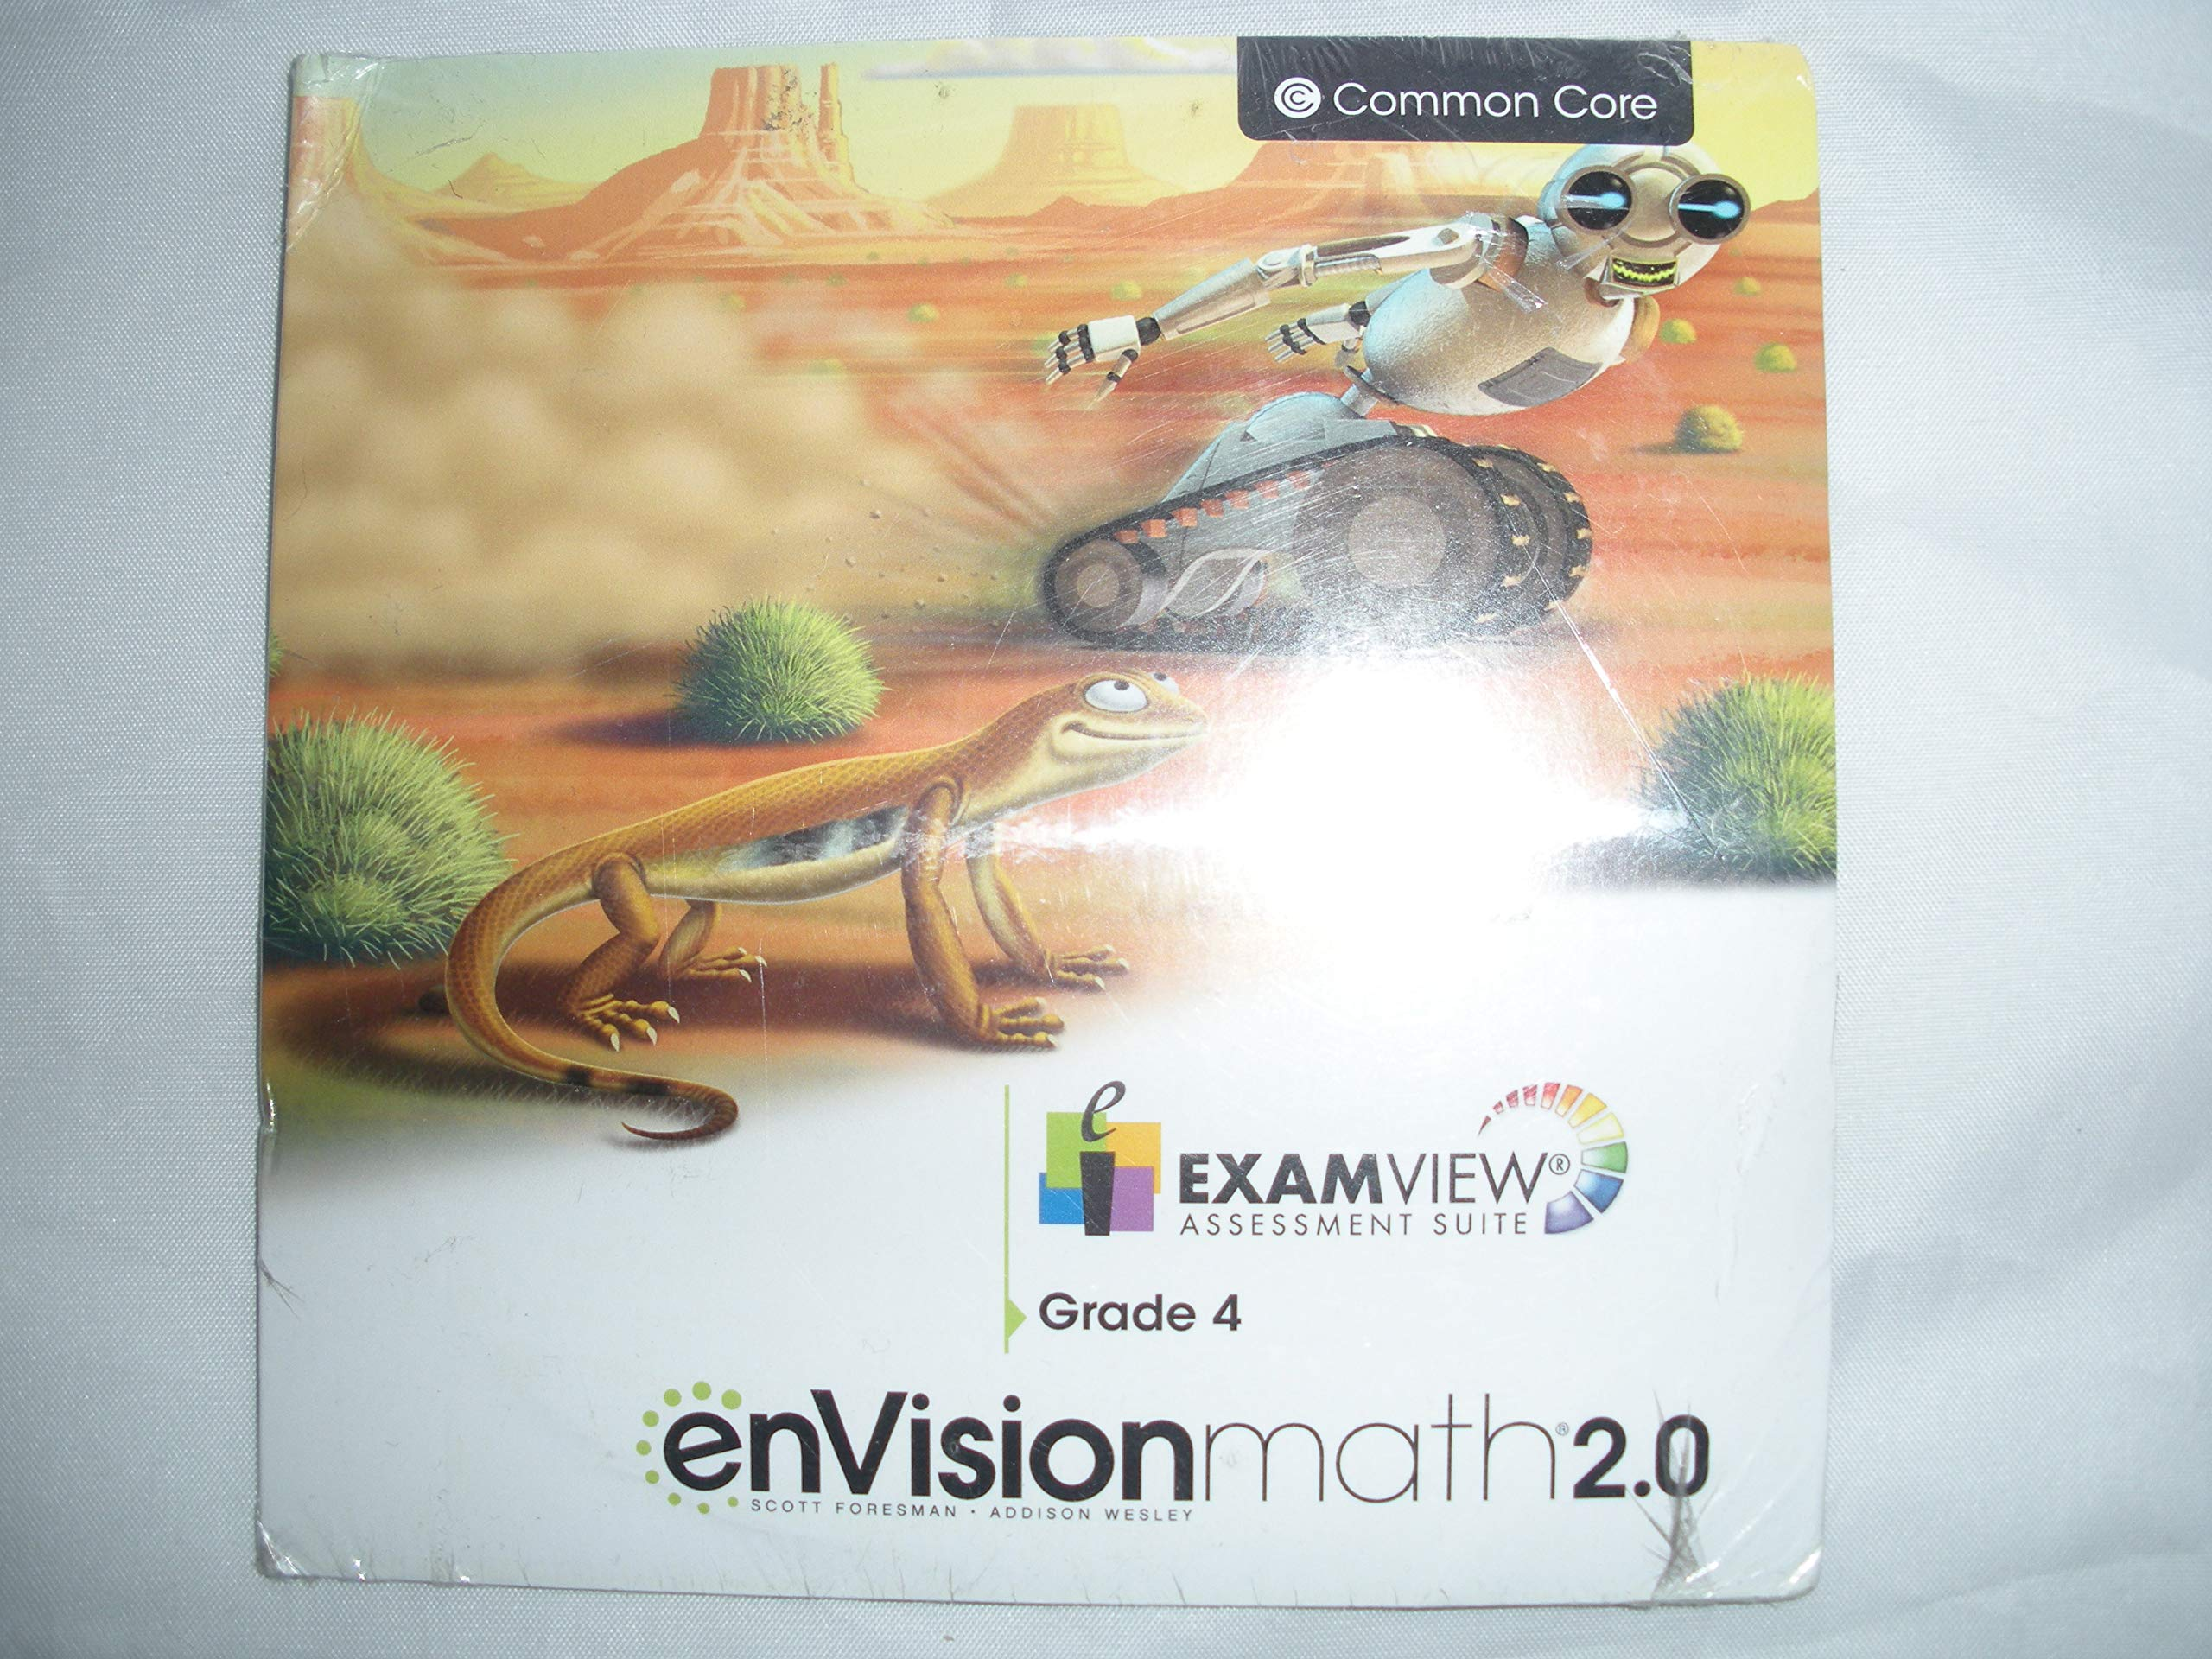 ExamView Assessment Suite CD-ROM for Use with enVision Math